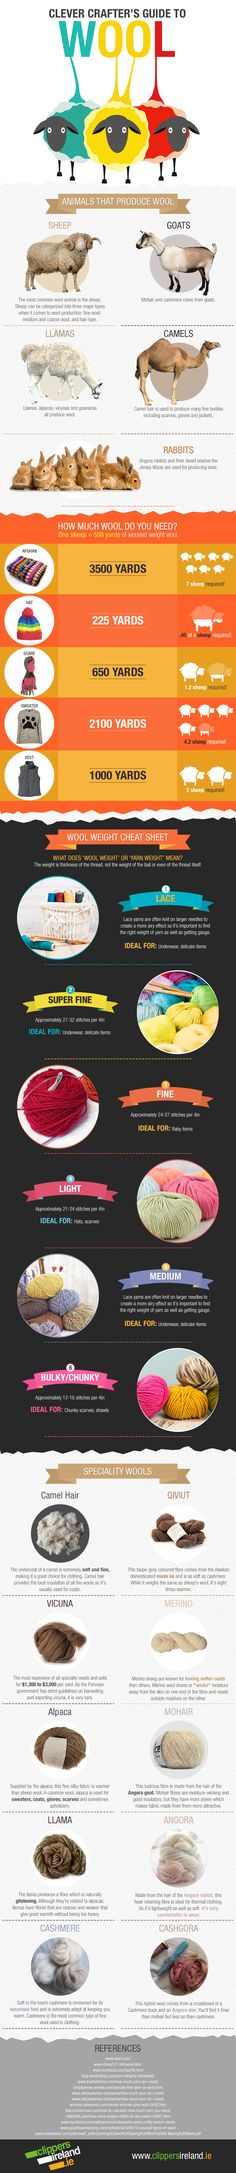 Guide to Wool for Knitting from Clippers Ireland